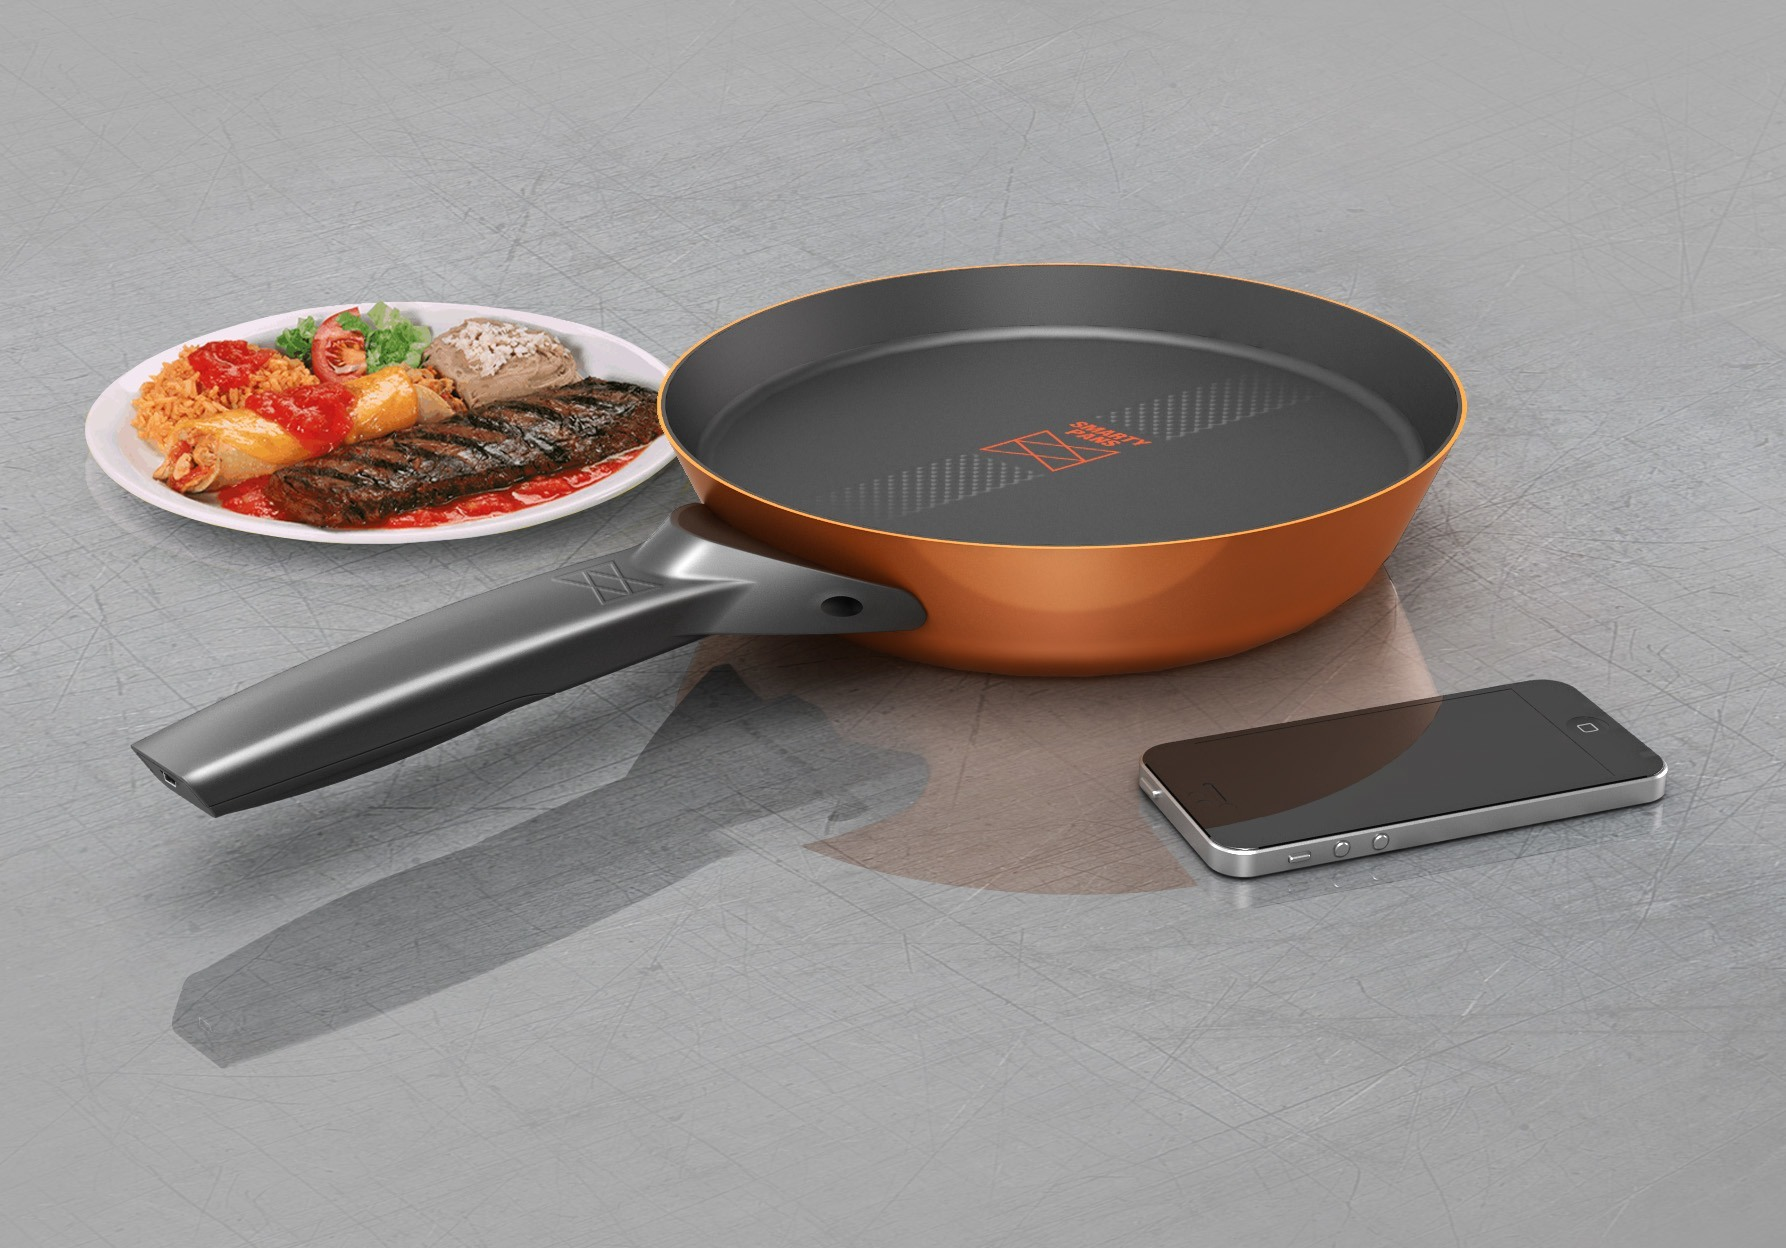 SmartyPans Smart Cooking Pan Counts Calories & More